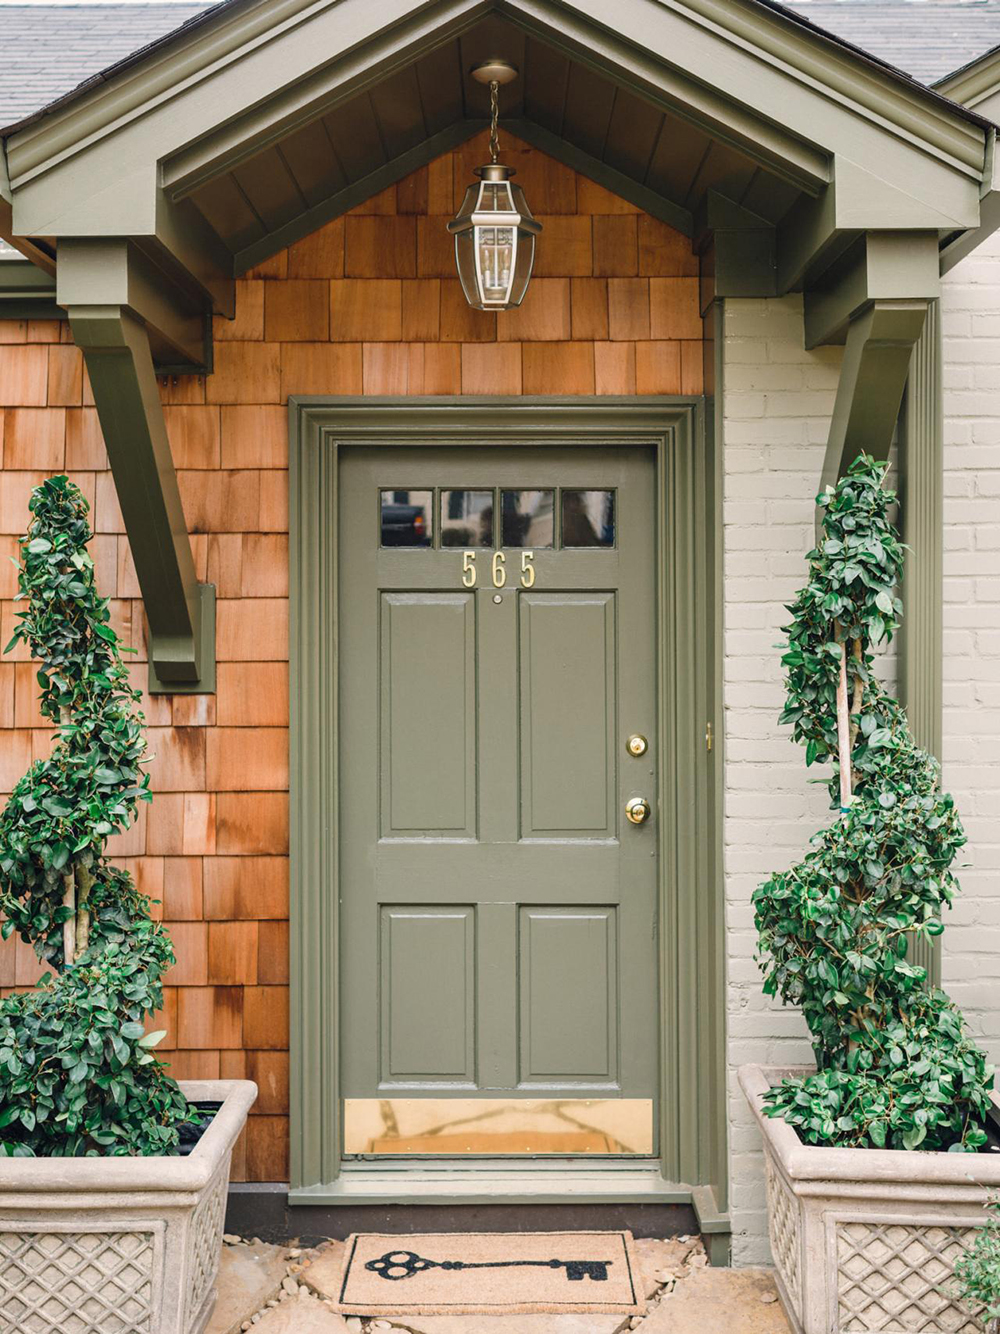 10 Pins : Front Door Edition - roomfortuesday.com